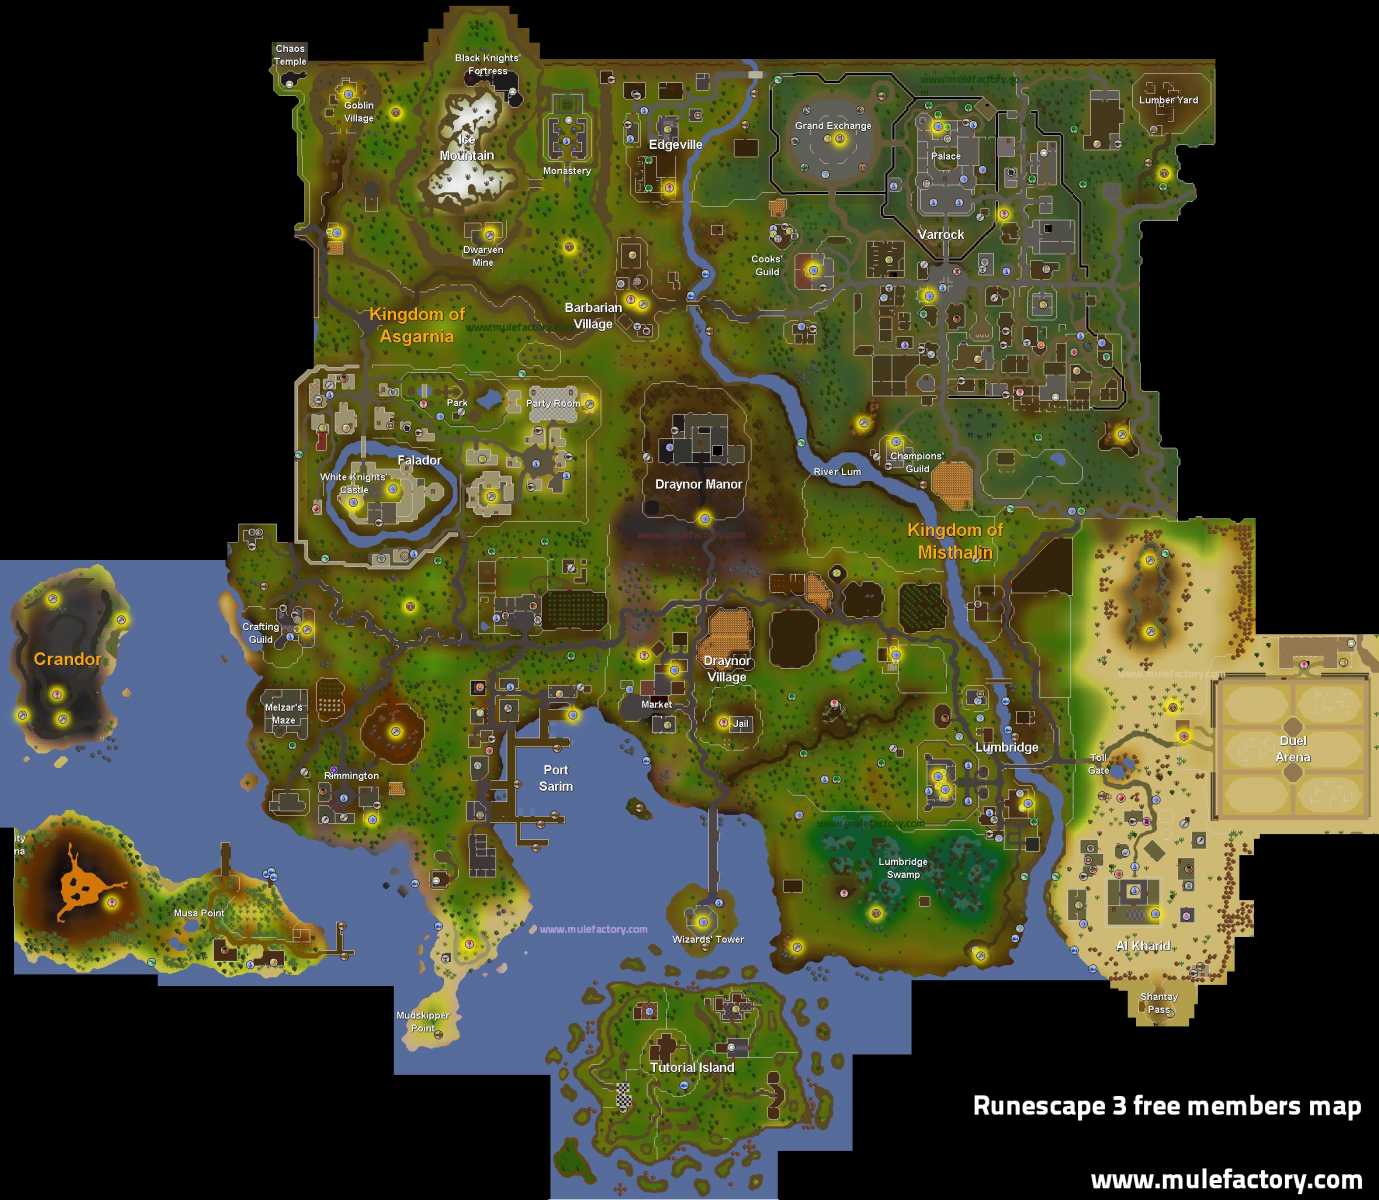 Members-only and free maps - Runescape 3 wiki